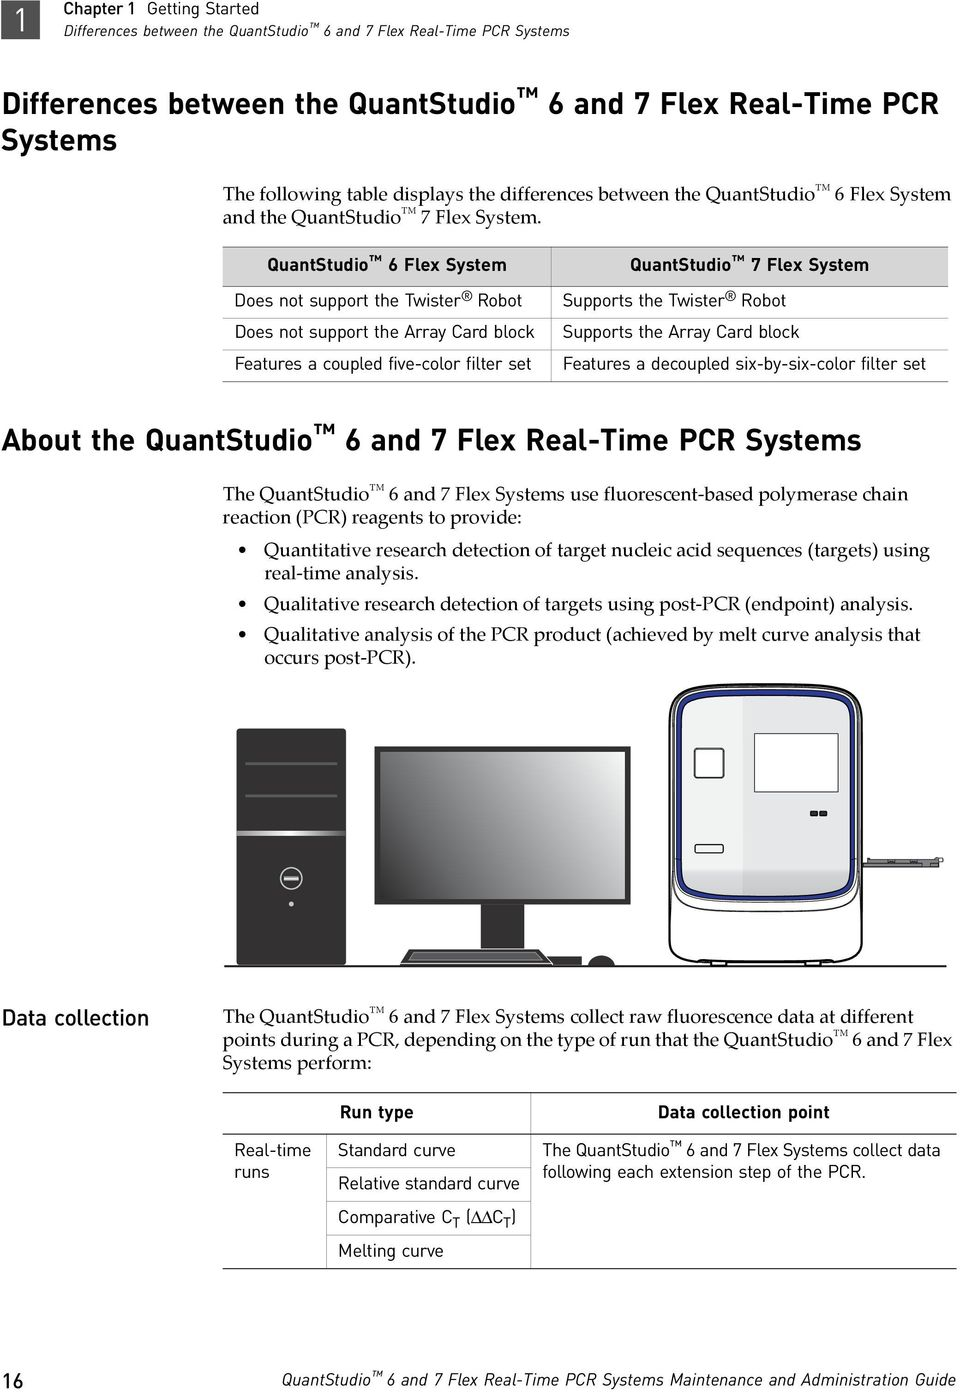 Quantstudio 6 And 7 Flex Real Time Pcr Systems Pdf Free Download